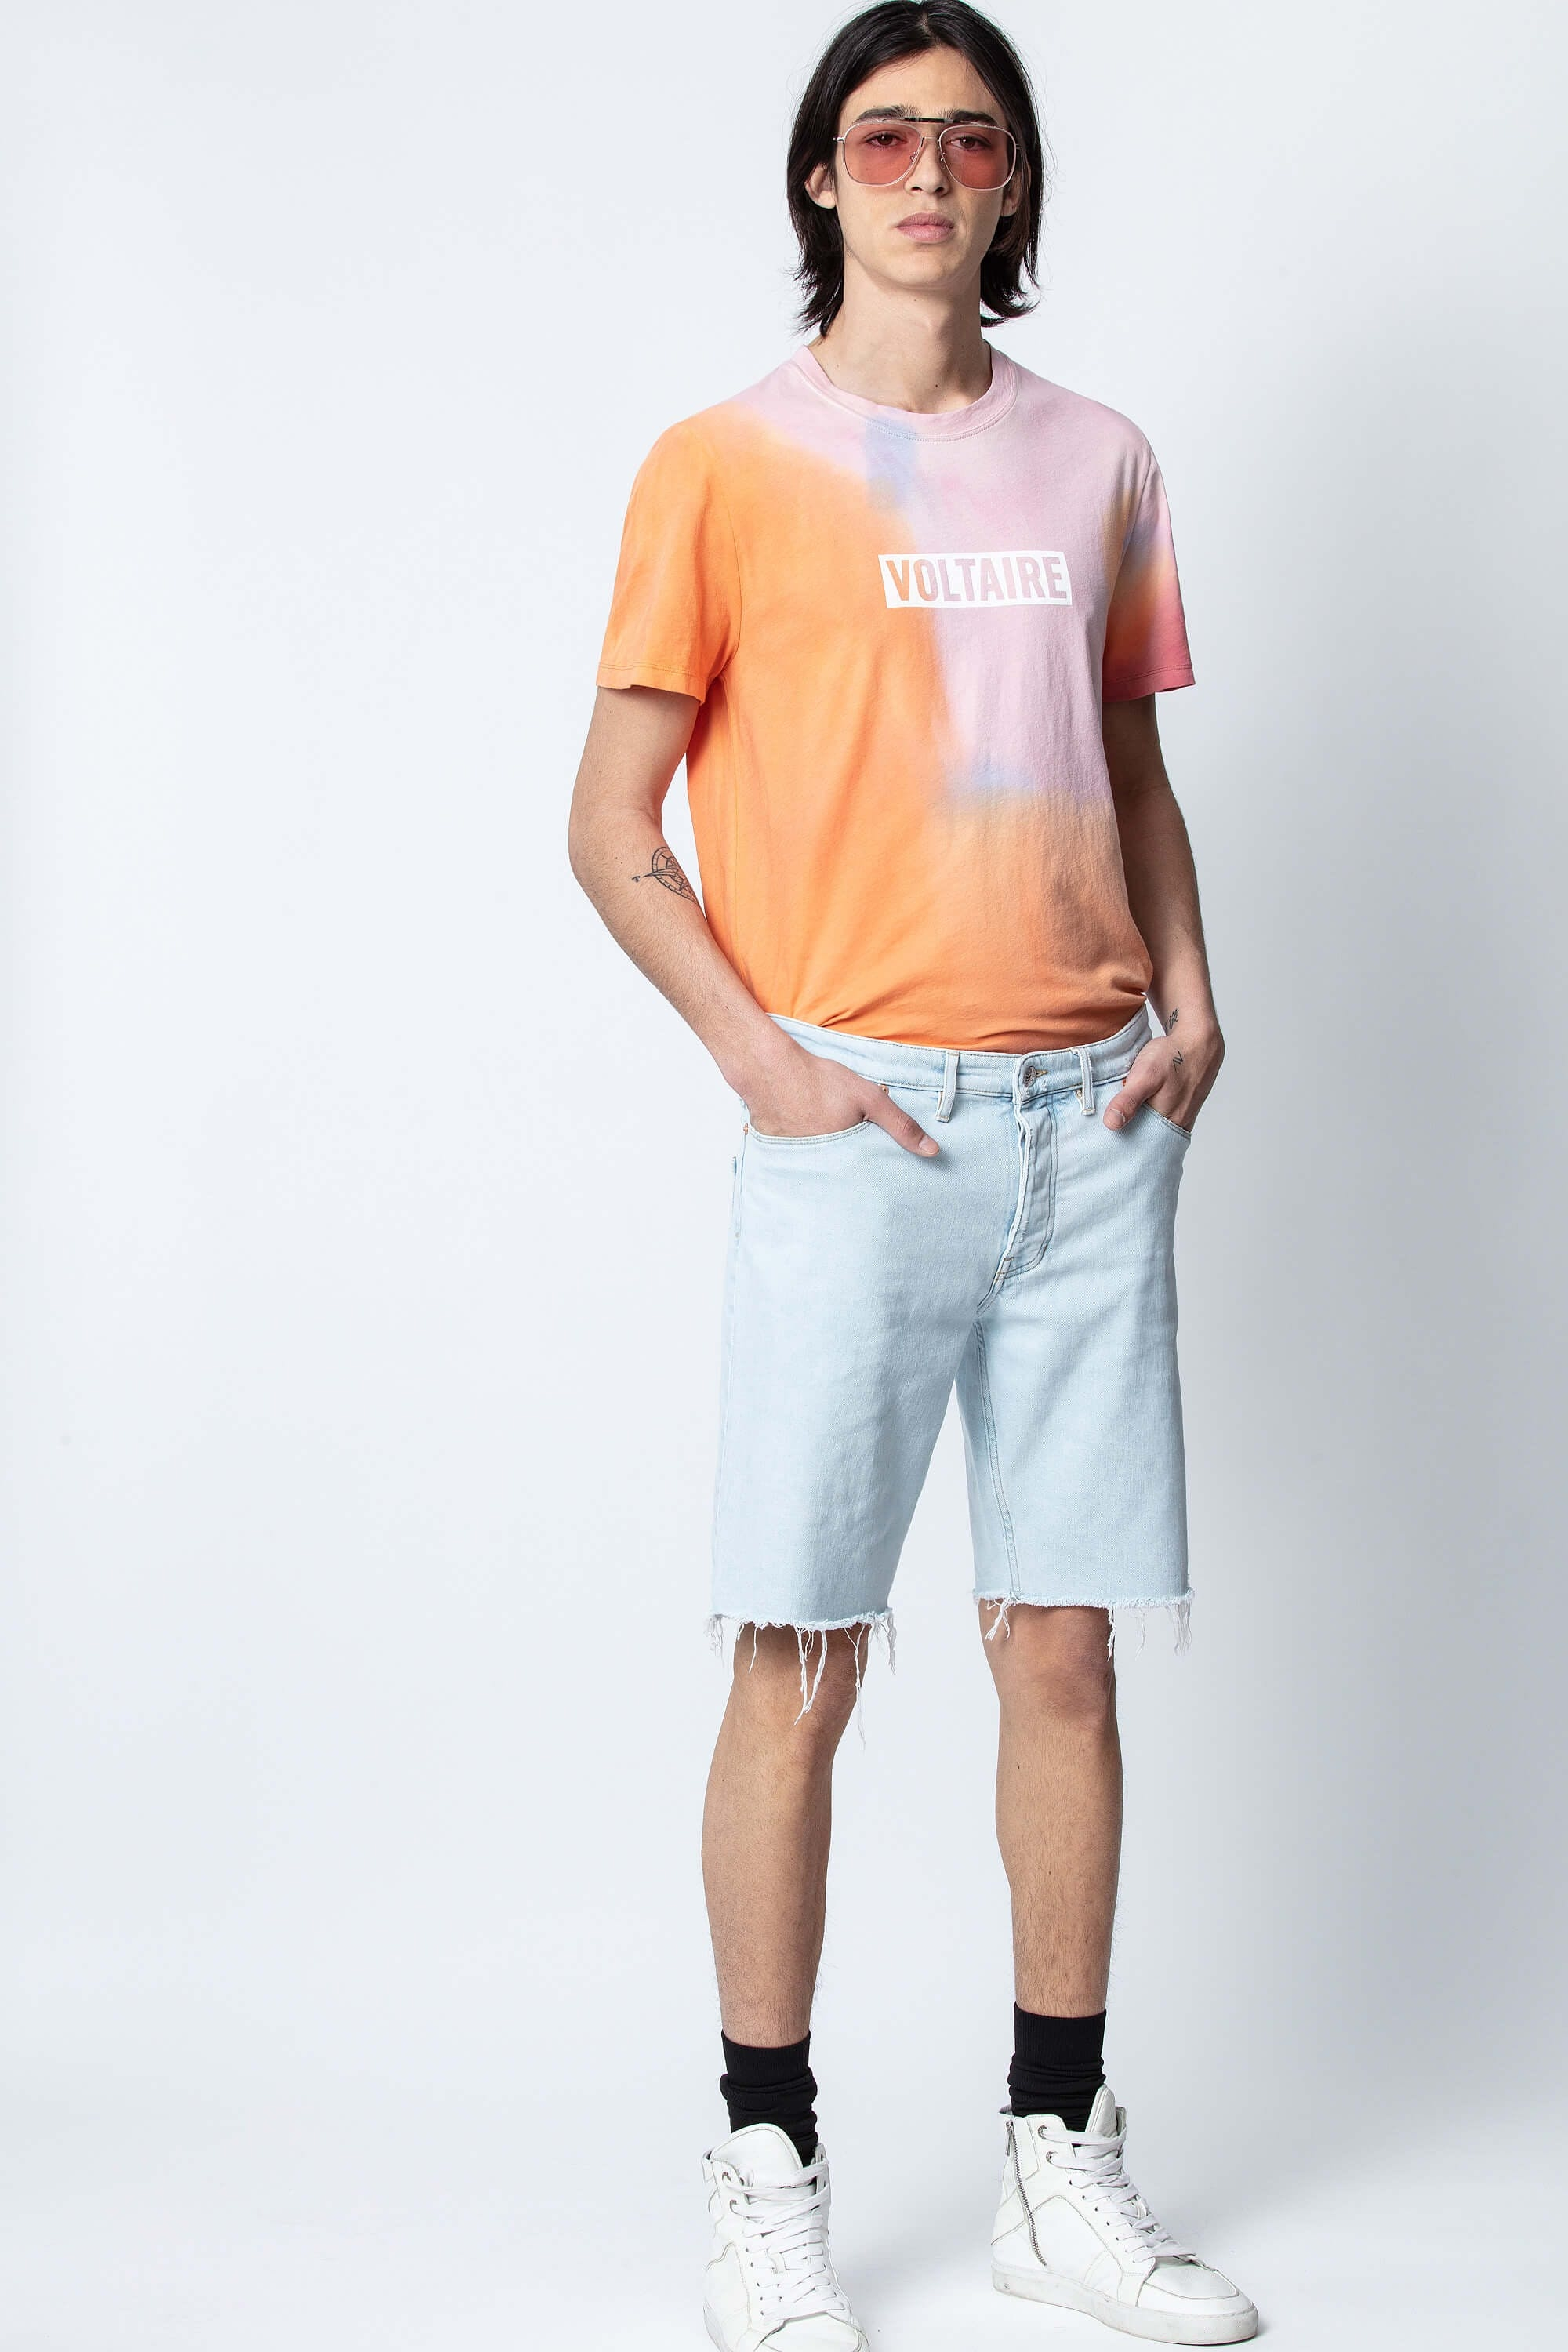 TED TD VOLTAIRE SHORT-SLEEVE